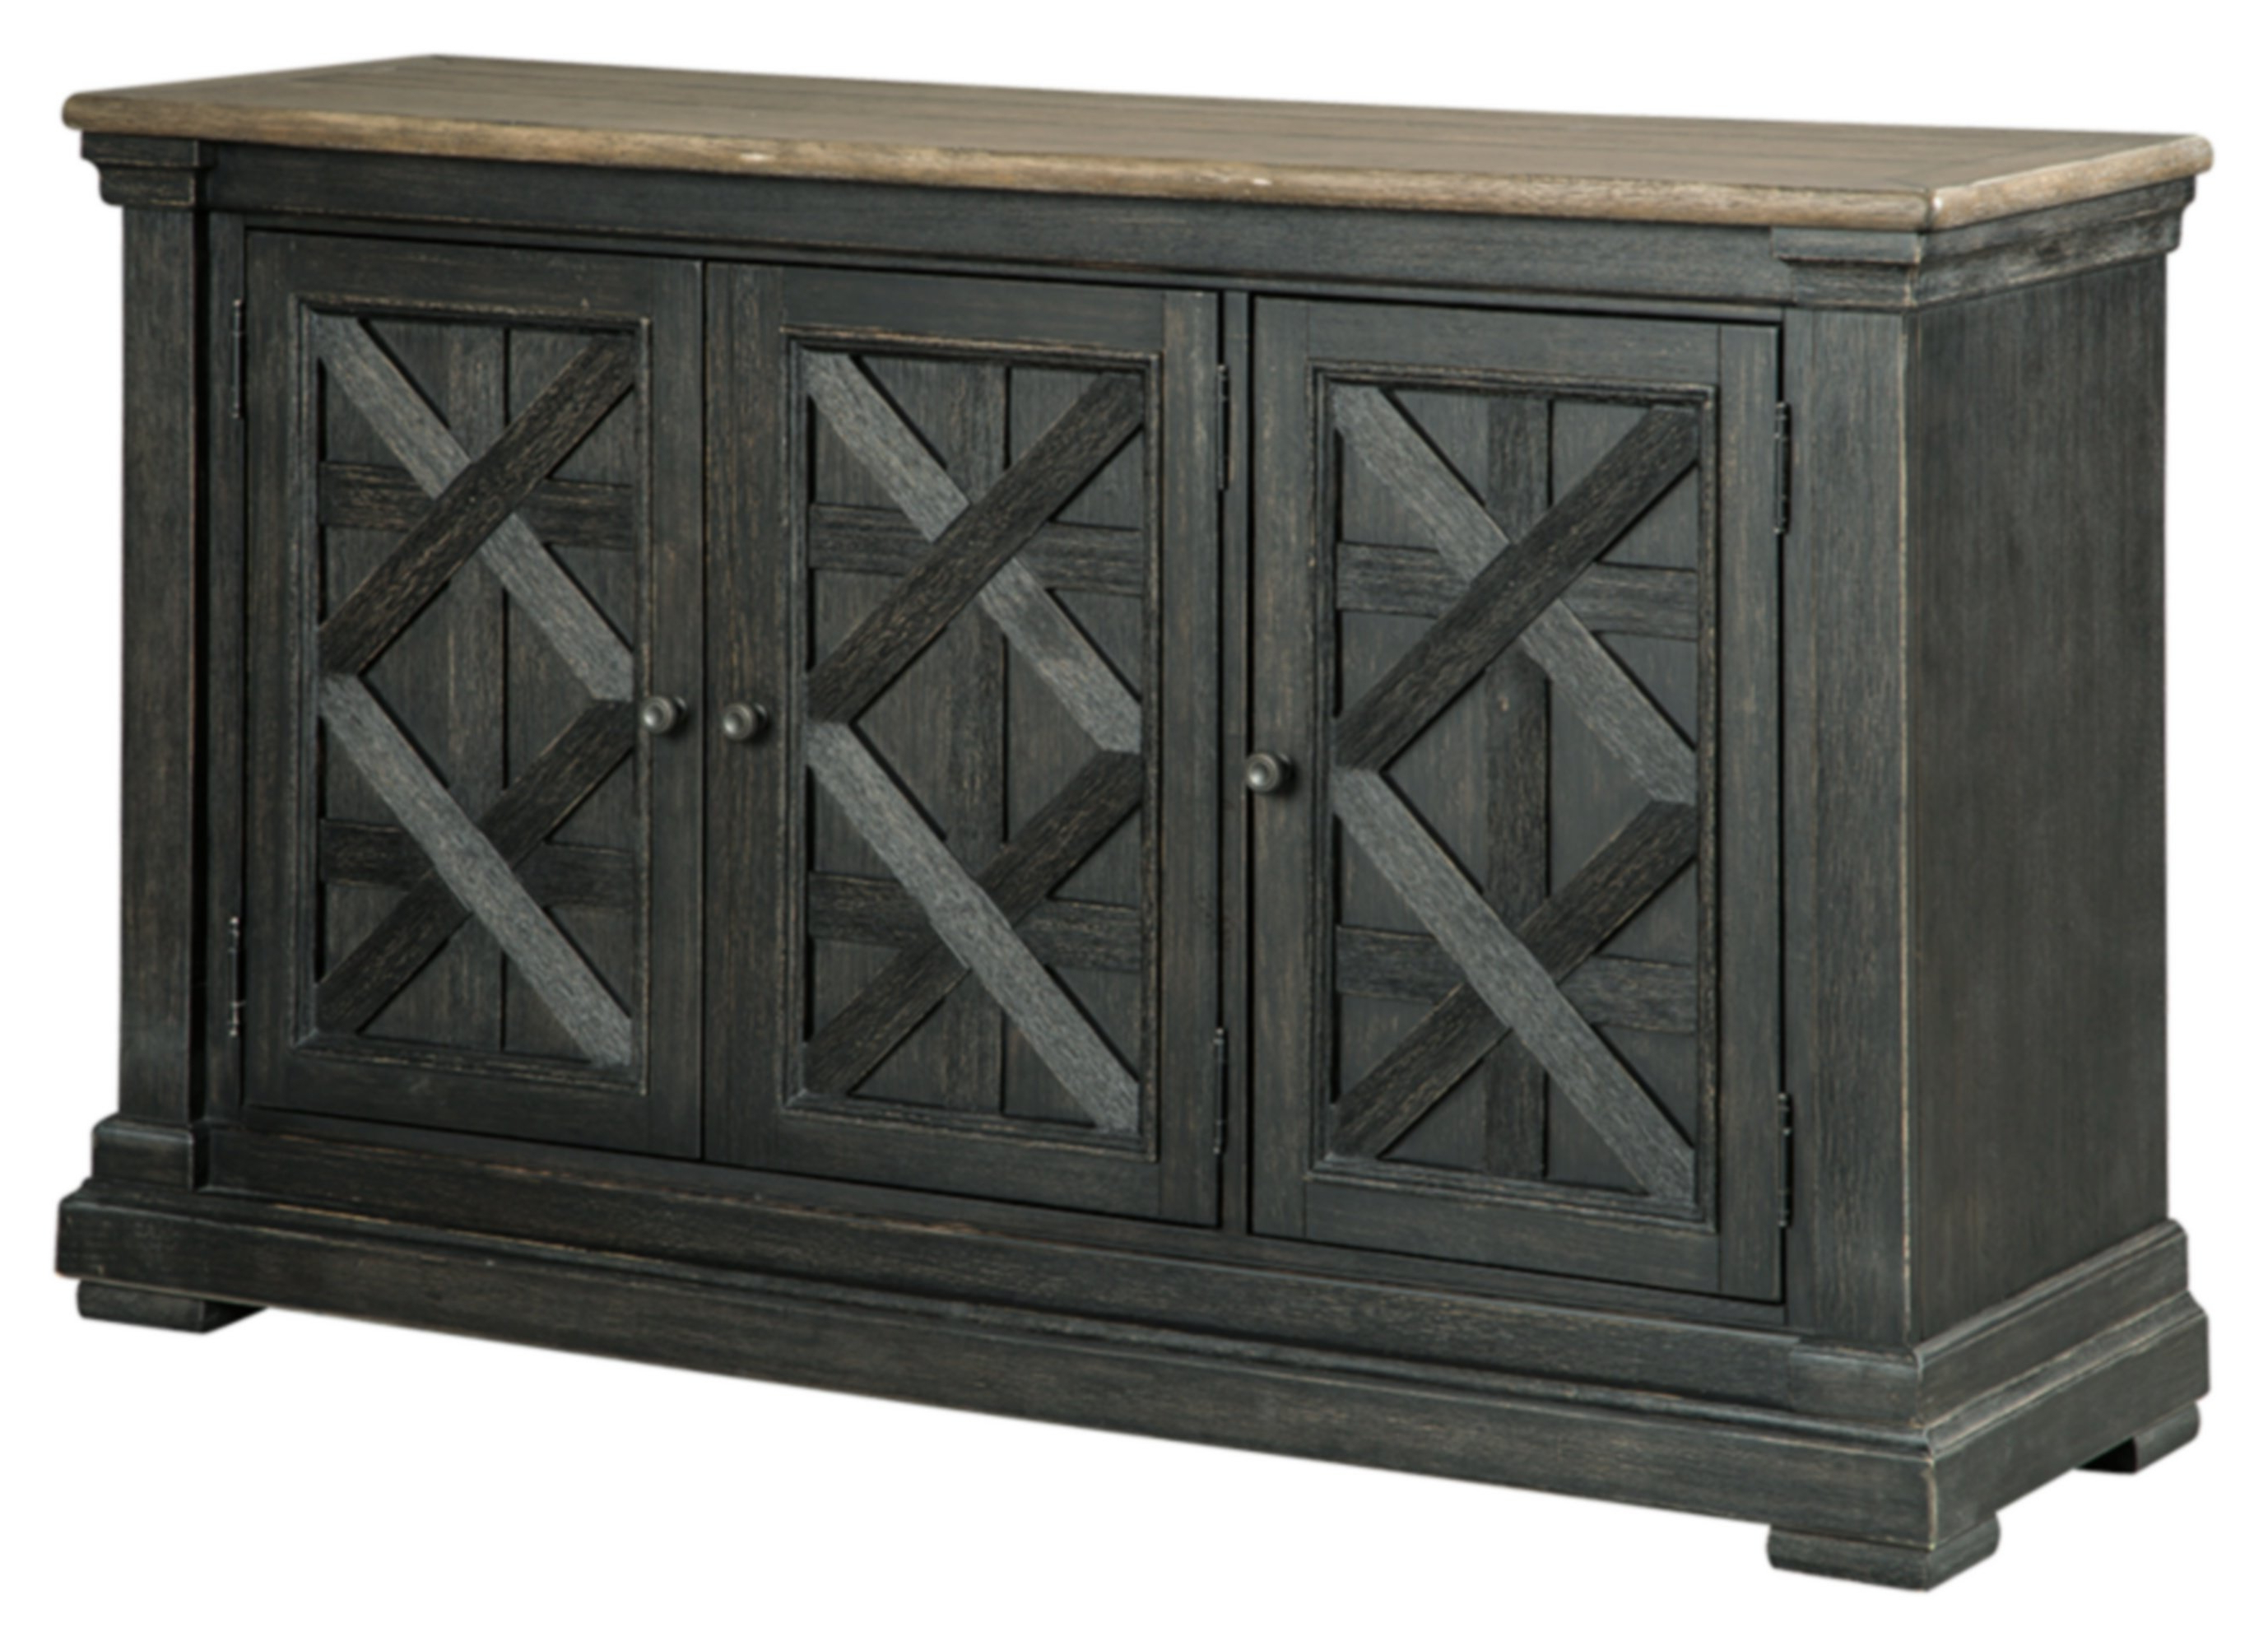 2019 Canora Grey Ventanas Sideboard Intended For Massillon Sideboards (Gallery 2 of 20)